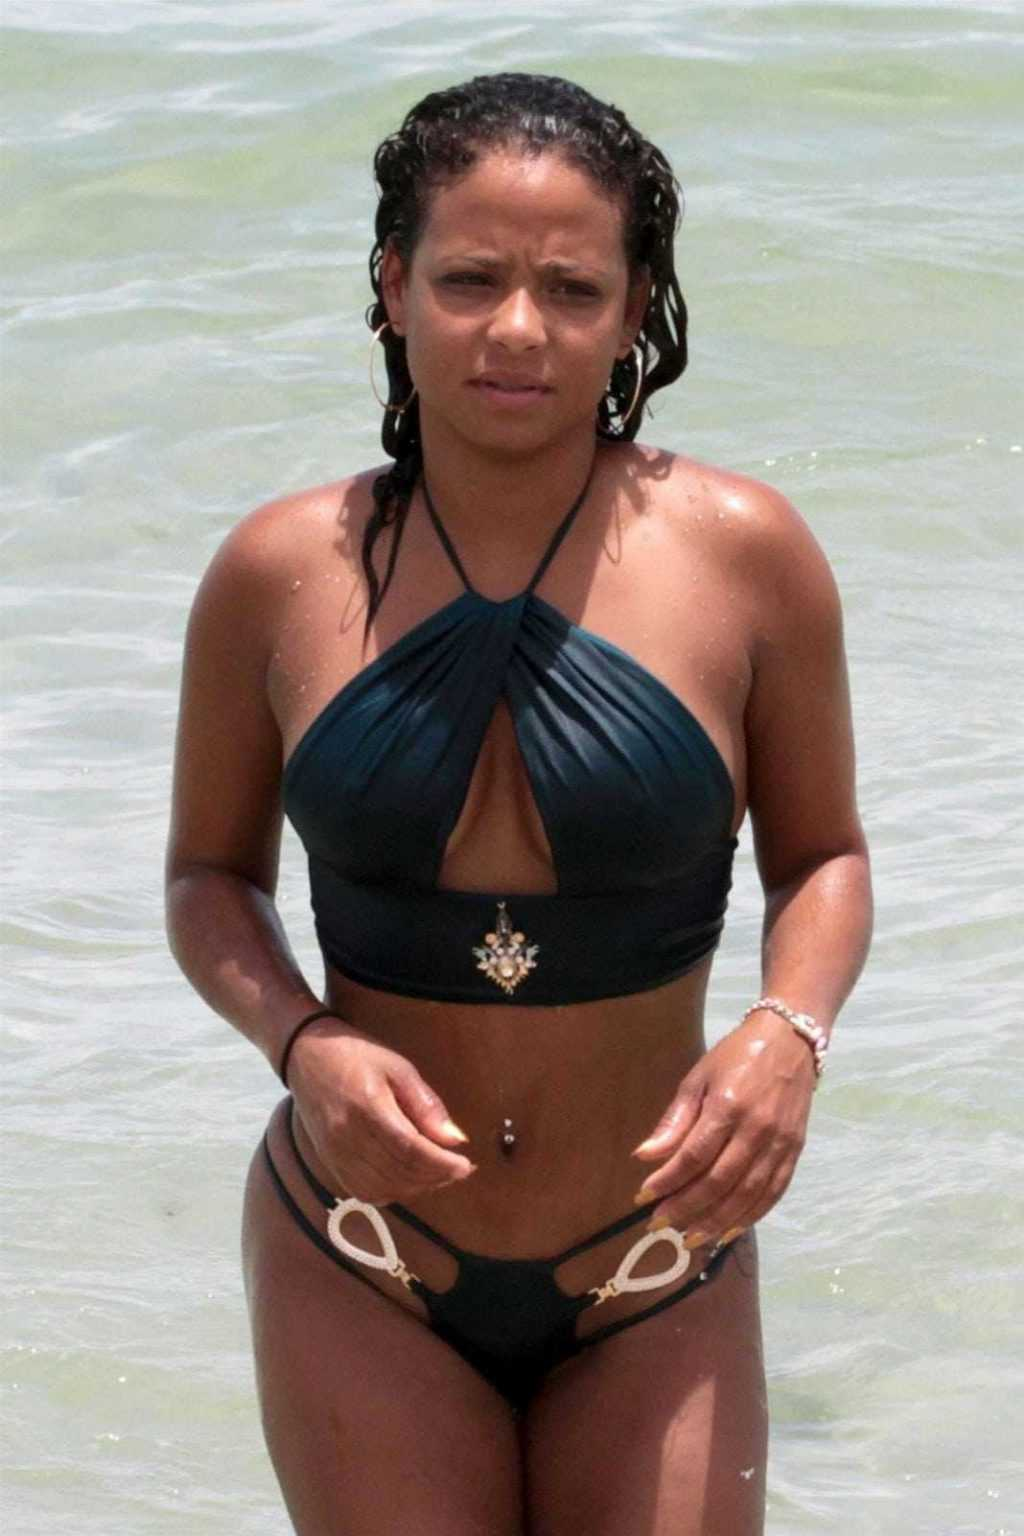 Christina Milian Hot Pictures, Bikini And More (50 Photos)